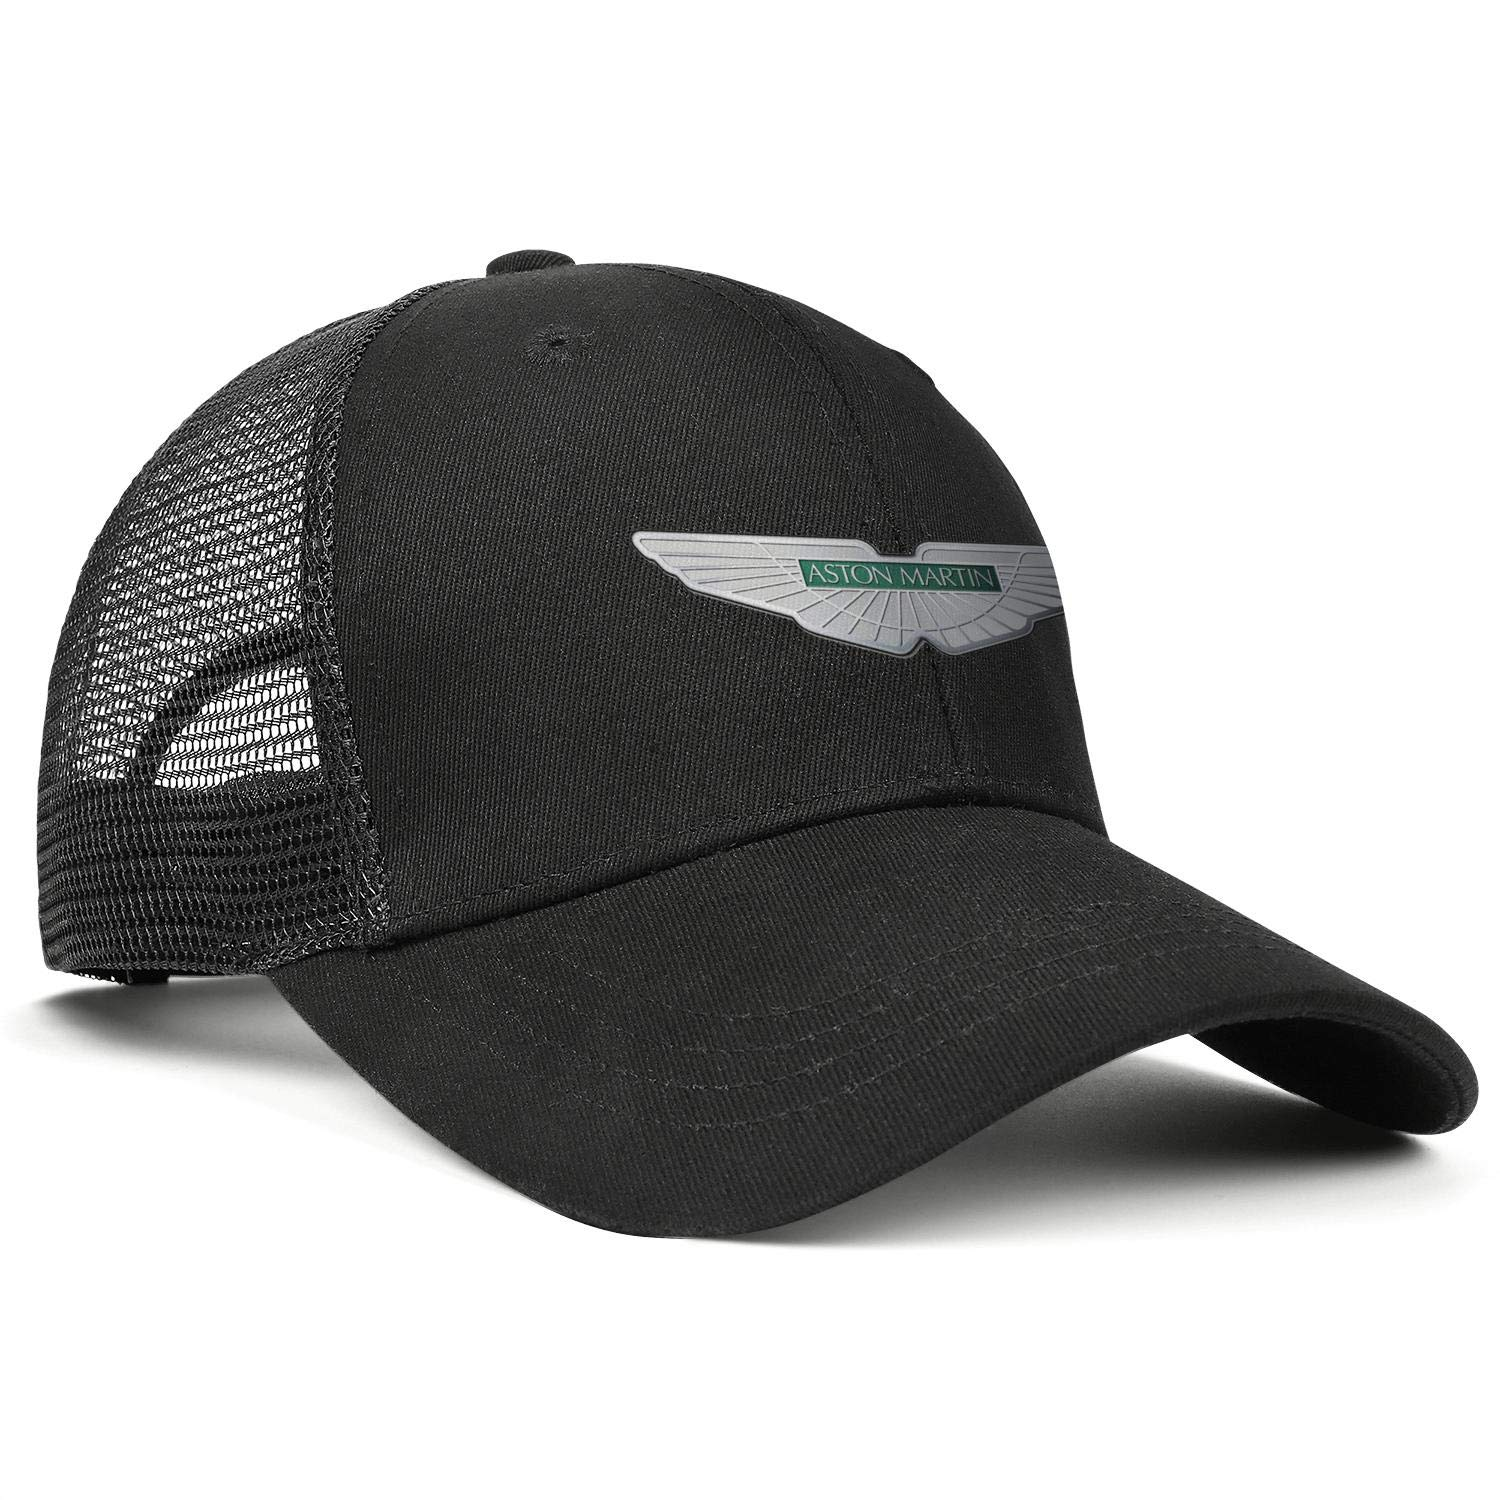 Cotton Black Dad Caps Aston-Martin Snapback Curved Mesh Hat